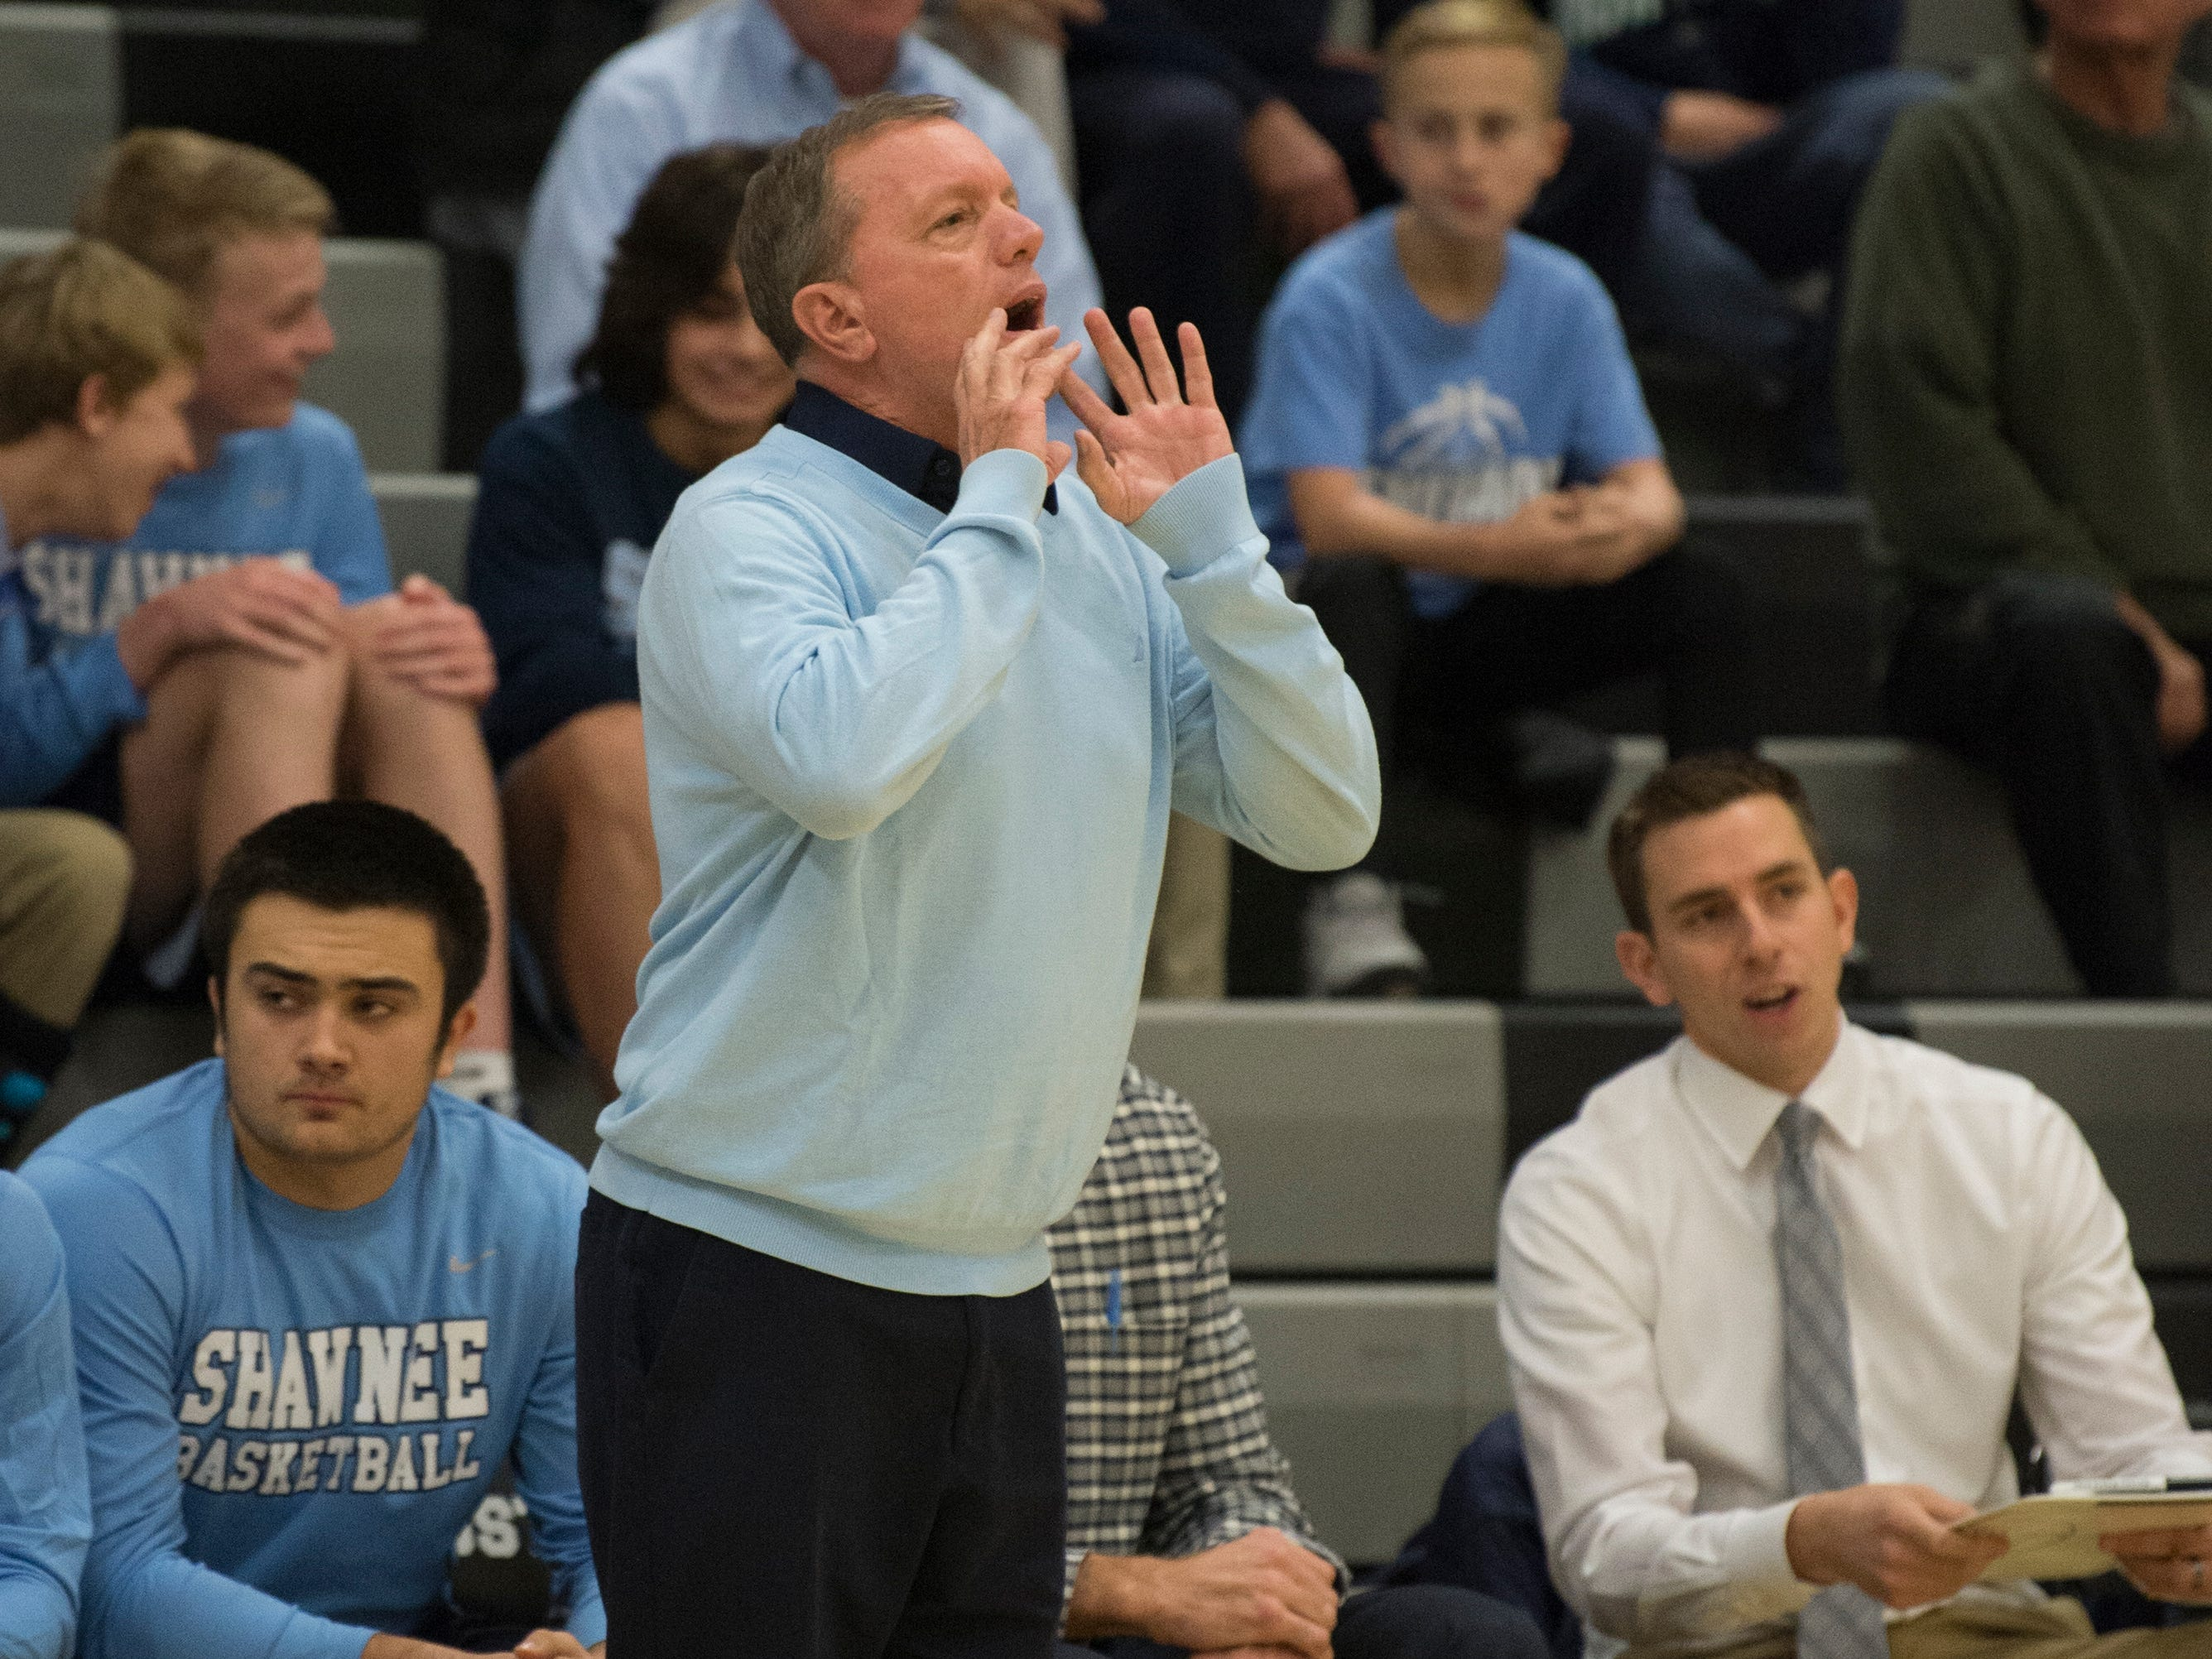 Shawnee boys basketball coach Joe Kessler instructs his players during the 1st quarter of the boys basketball game between Bishop Eustace and Shawnee played at Bishop Eustace High School in Pennsauken on Friday, December 14, 2018.  Bishop Eustace won, 51-35.